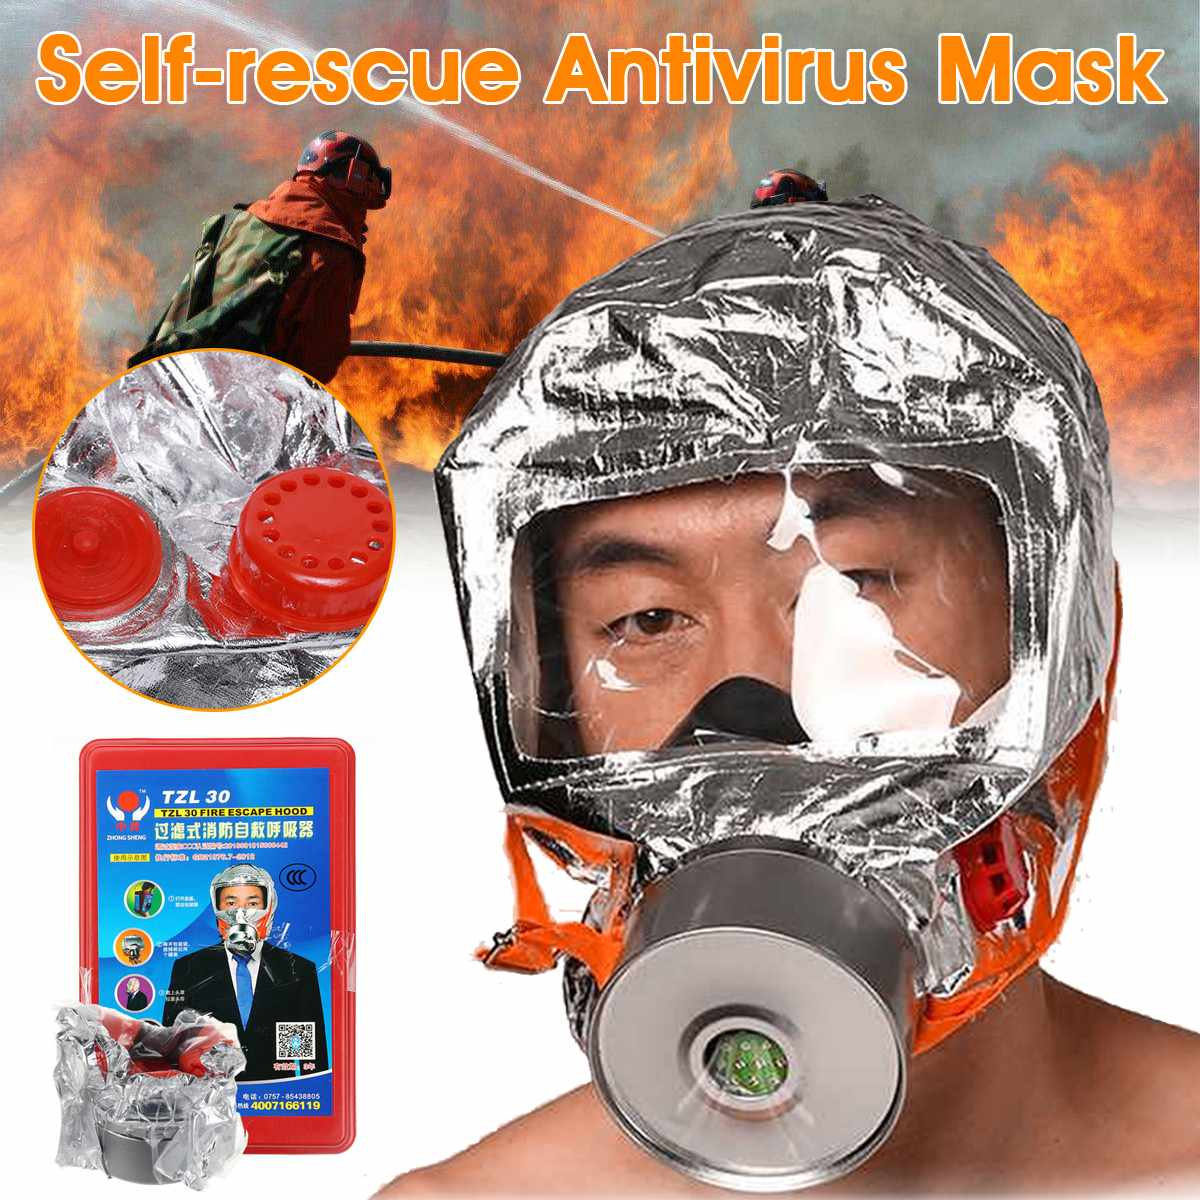 Smoke Fire Fog Mask Filtering Respiratory Protective Devices For Hotel Household Firefighting Escape Self-rescue Antivirus Mask